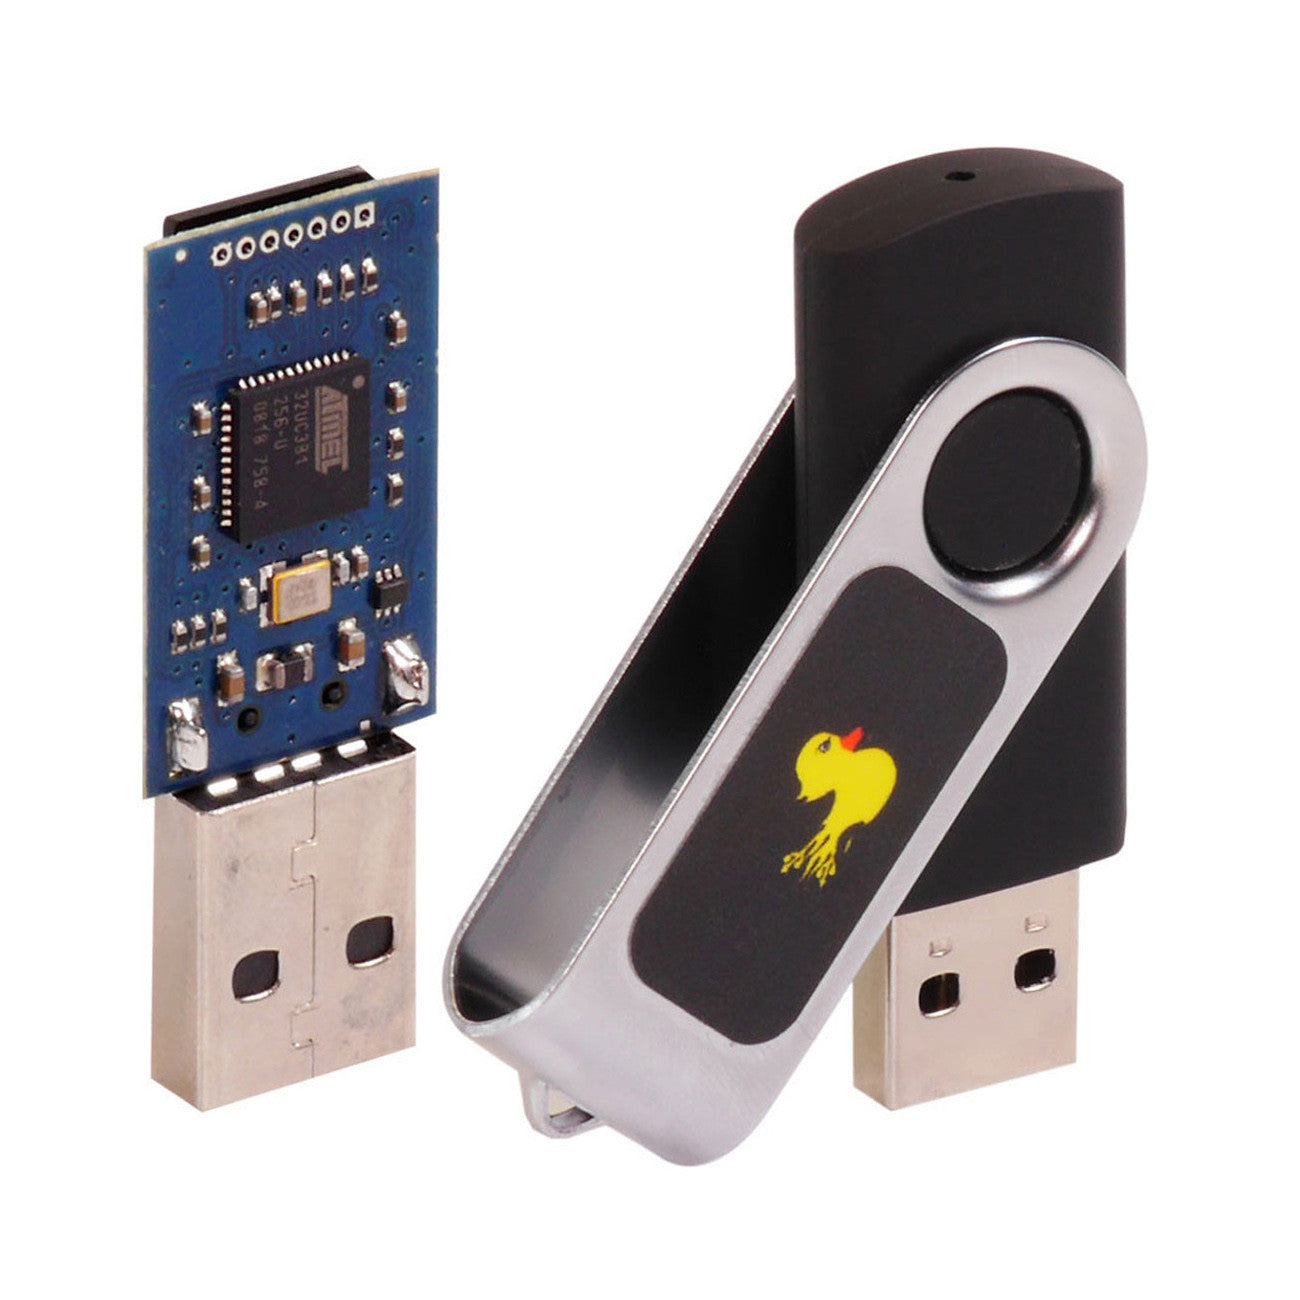 Usb Rubber Ducky Hak5 Gear